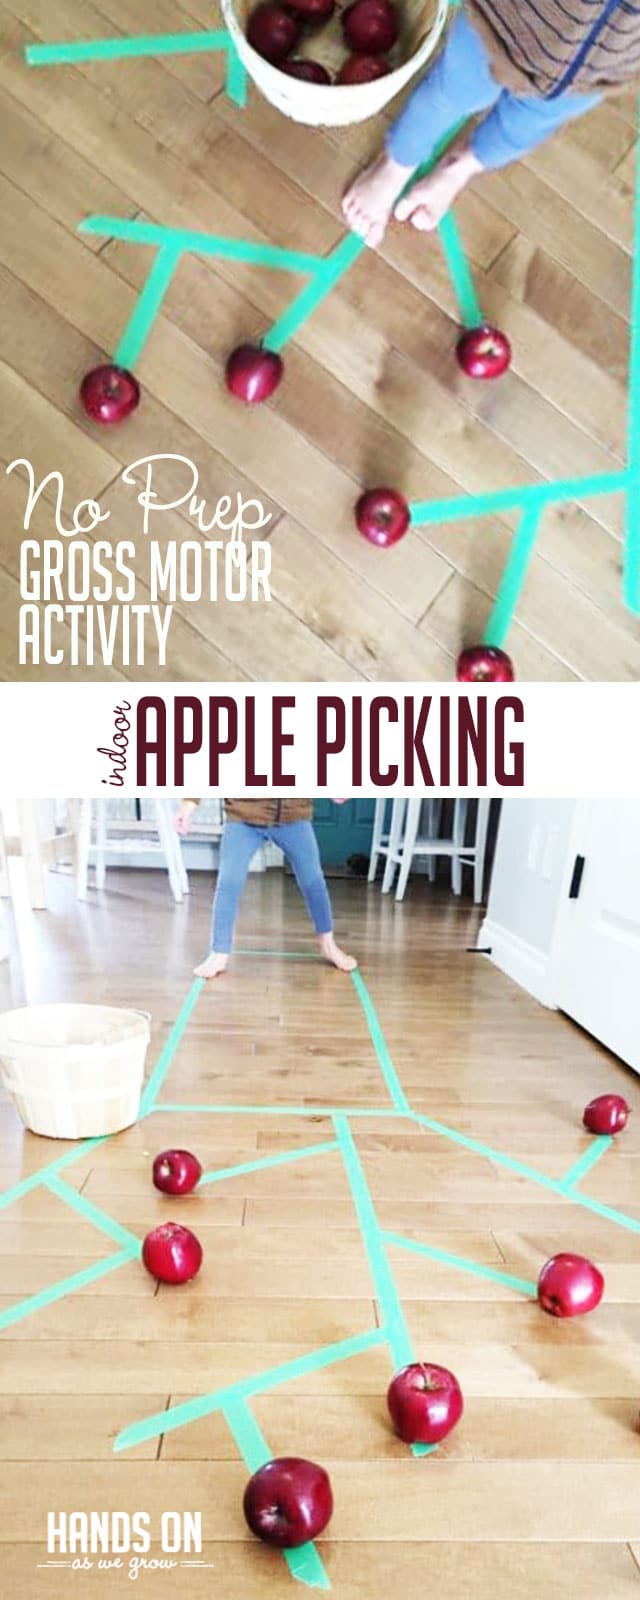 Apple tree picking activity that's great for gross motor skills